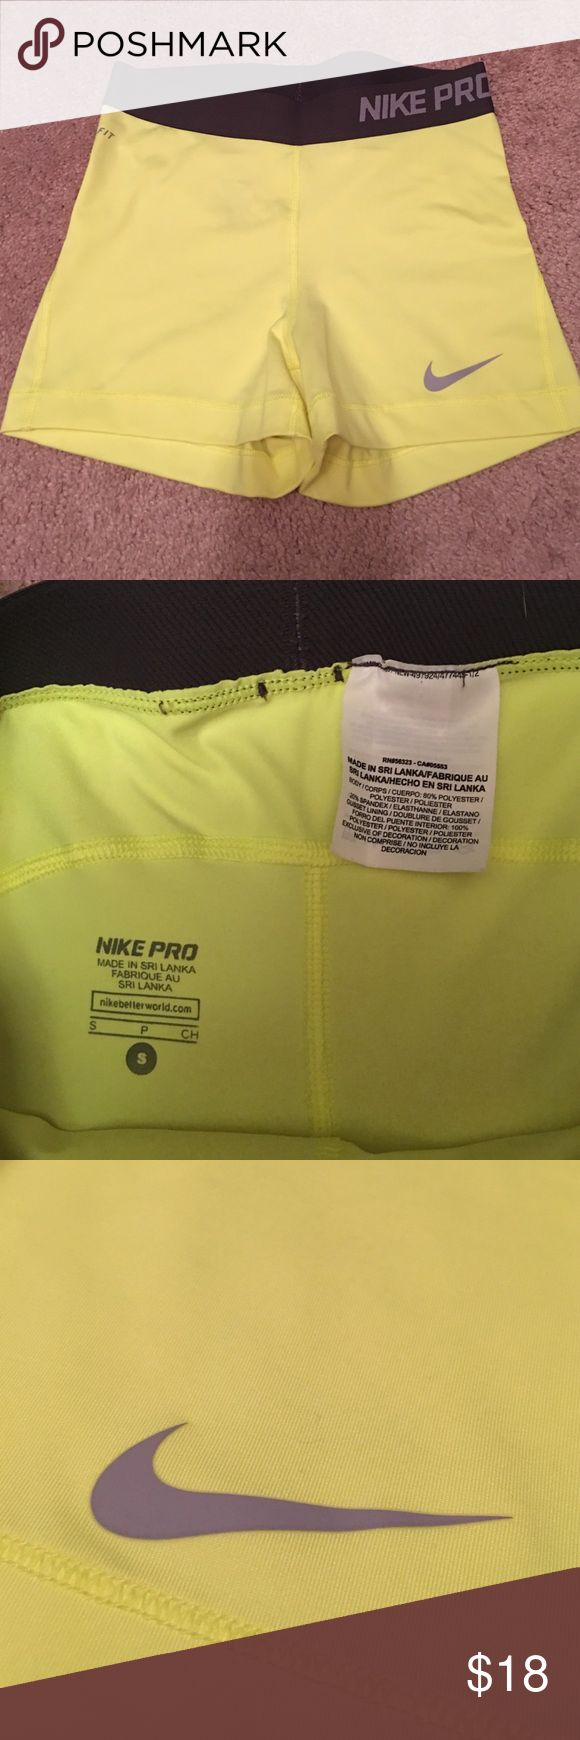 Neon yellow Nike Pro Spandex Nike Pro Dri-Fit shorts. Color is a bright neon yellow with dark grey band around the waist. Maybe worn once, so they are in great condition! Selling due to them sitting in my closet for so long. Nike Shorts